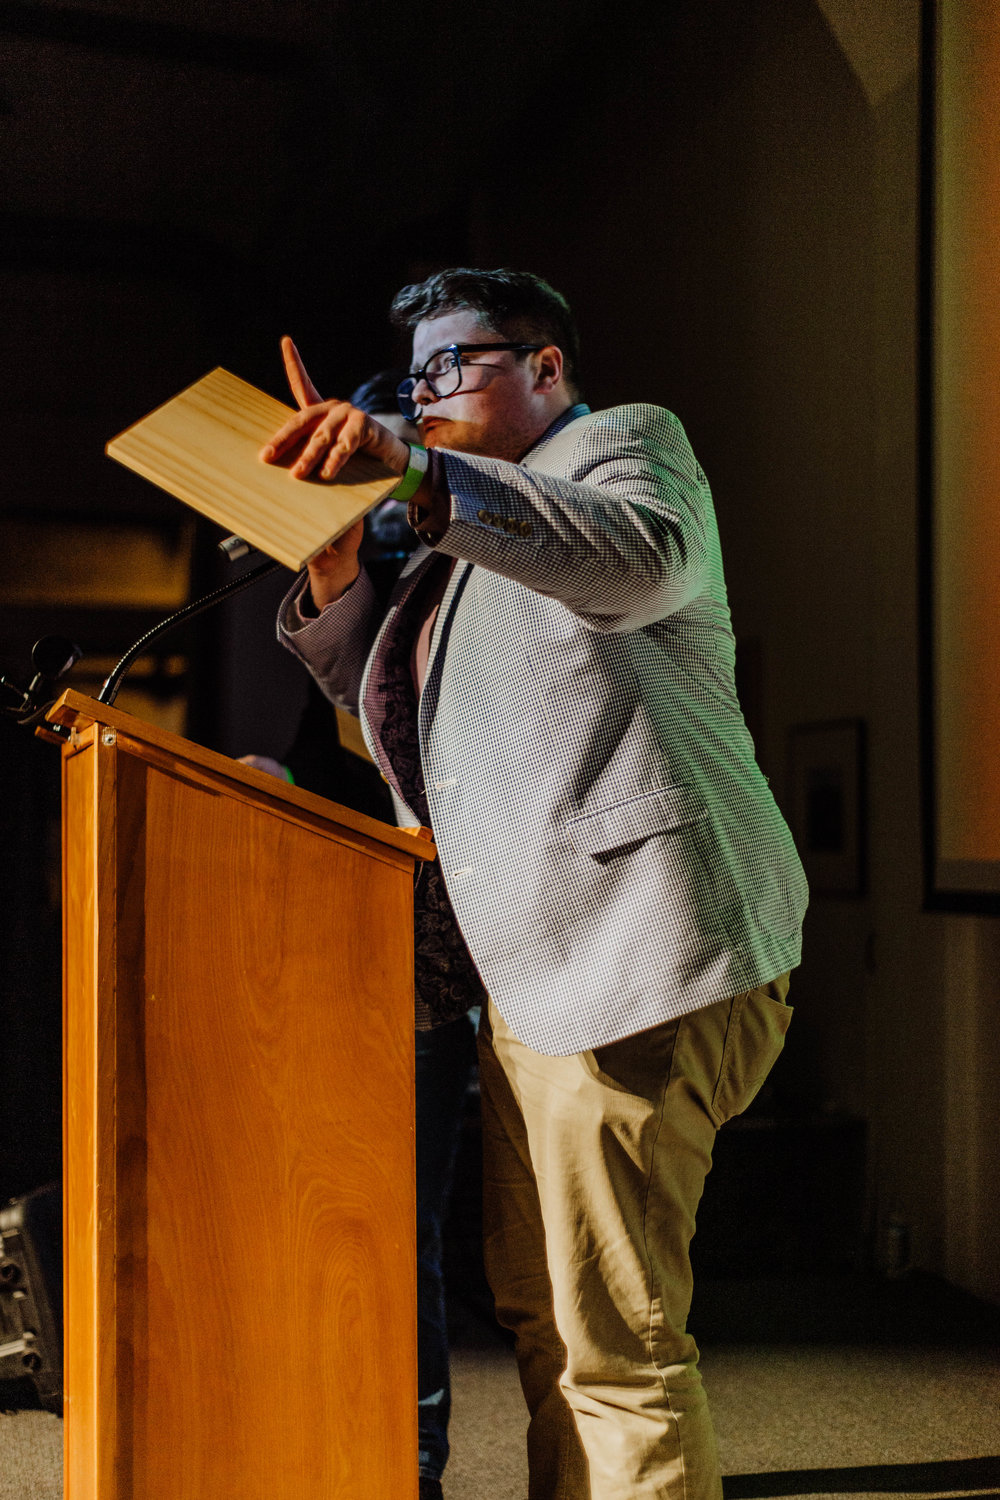 Tony Casillas accepts his award as Best Comedian.